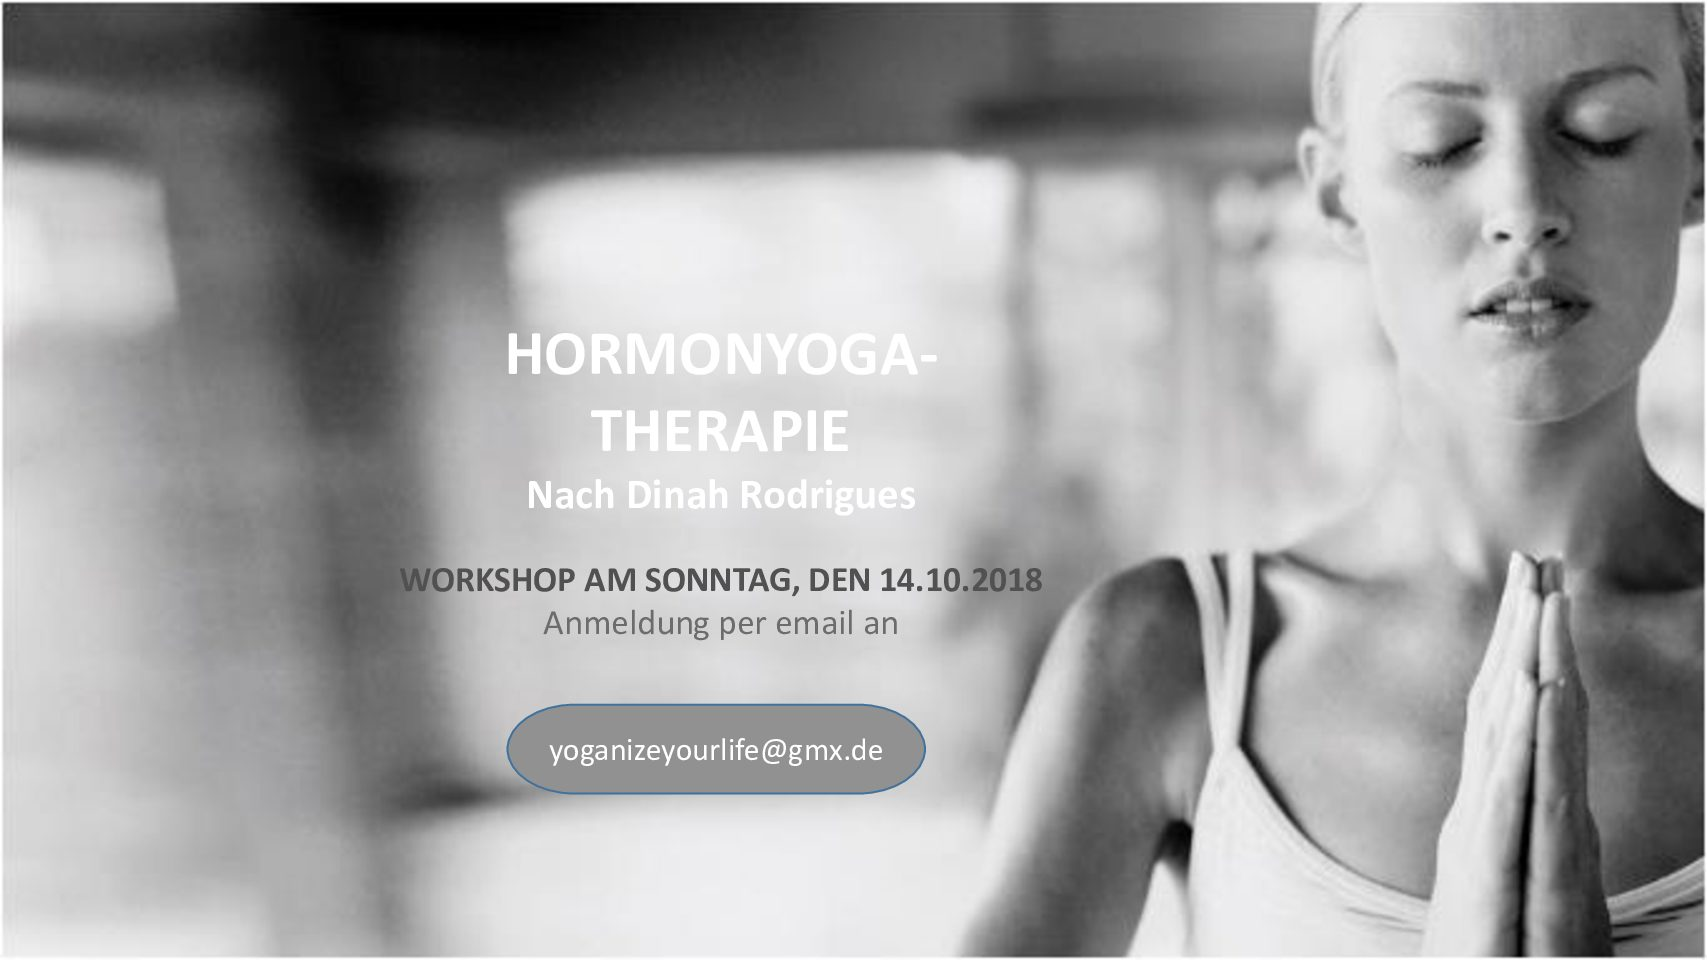 Hormonyoga Workshop MOVEMENT Fitness 1 pdf - Hormonyoga Workshop 14.10.2018